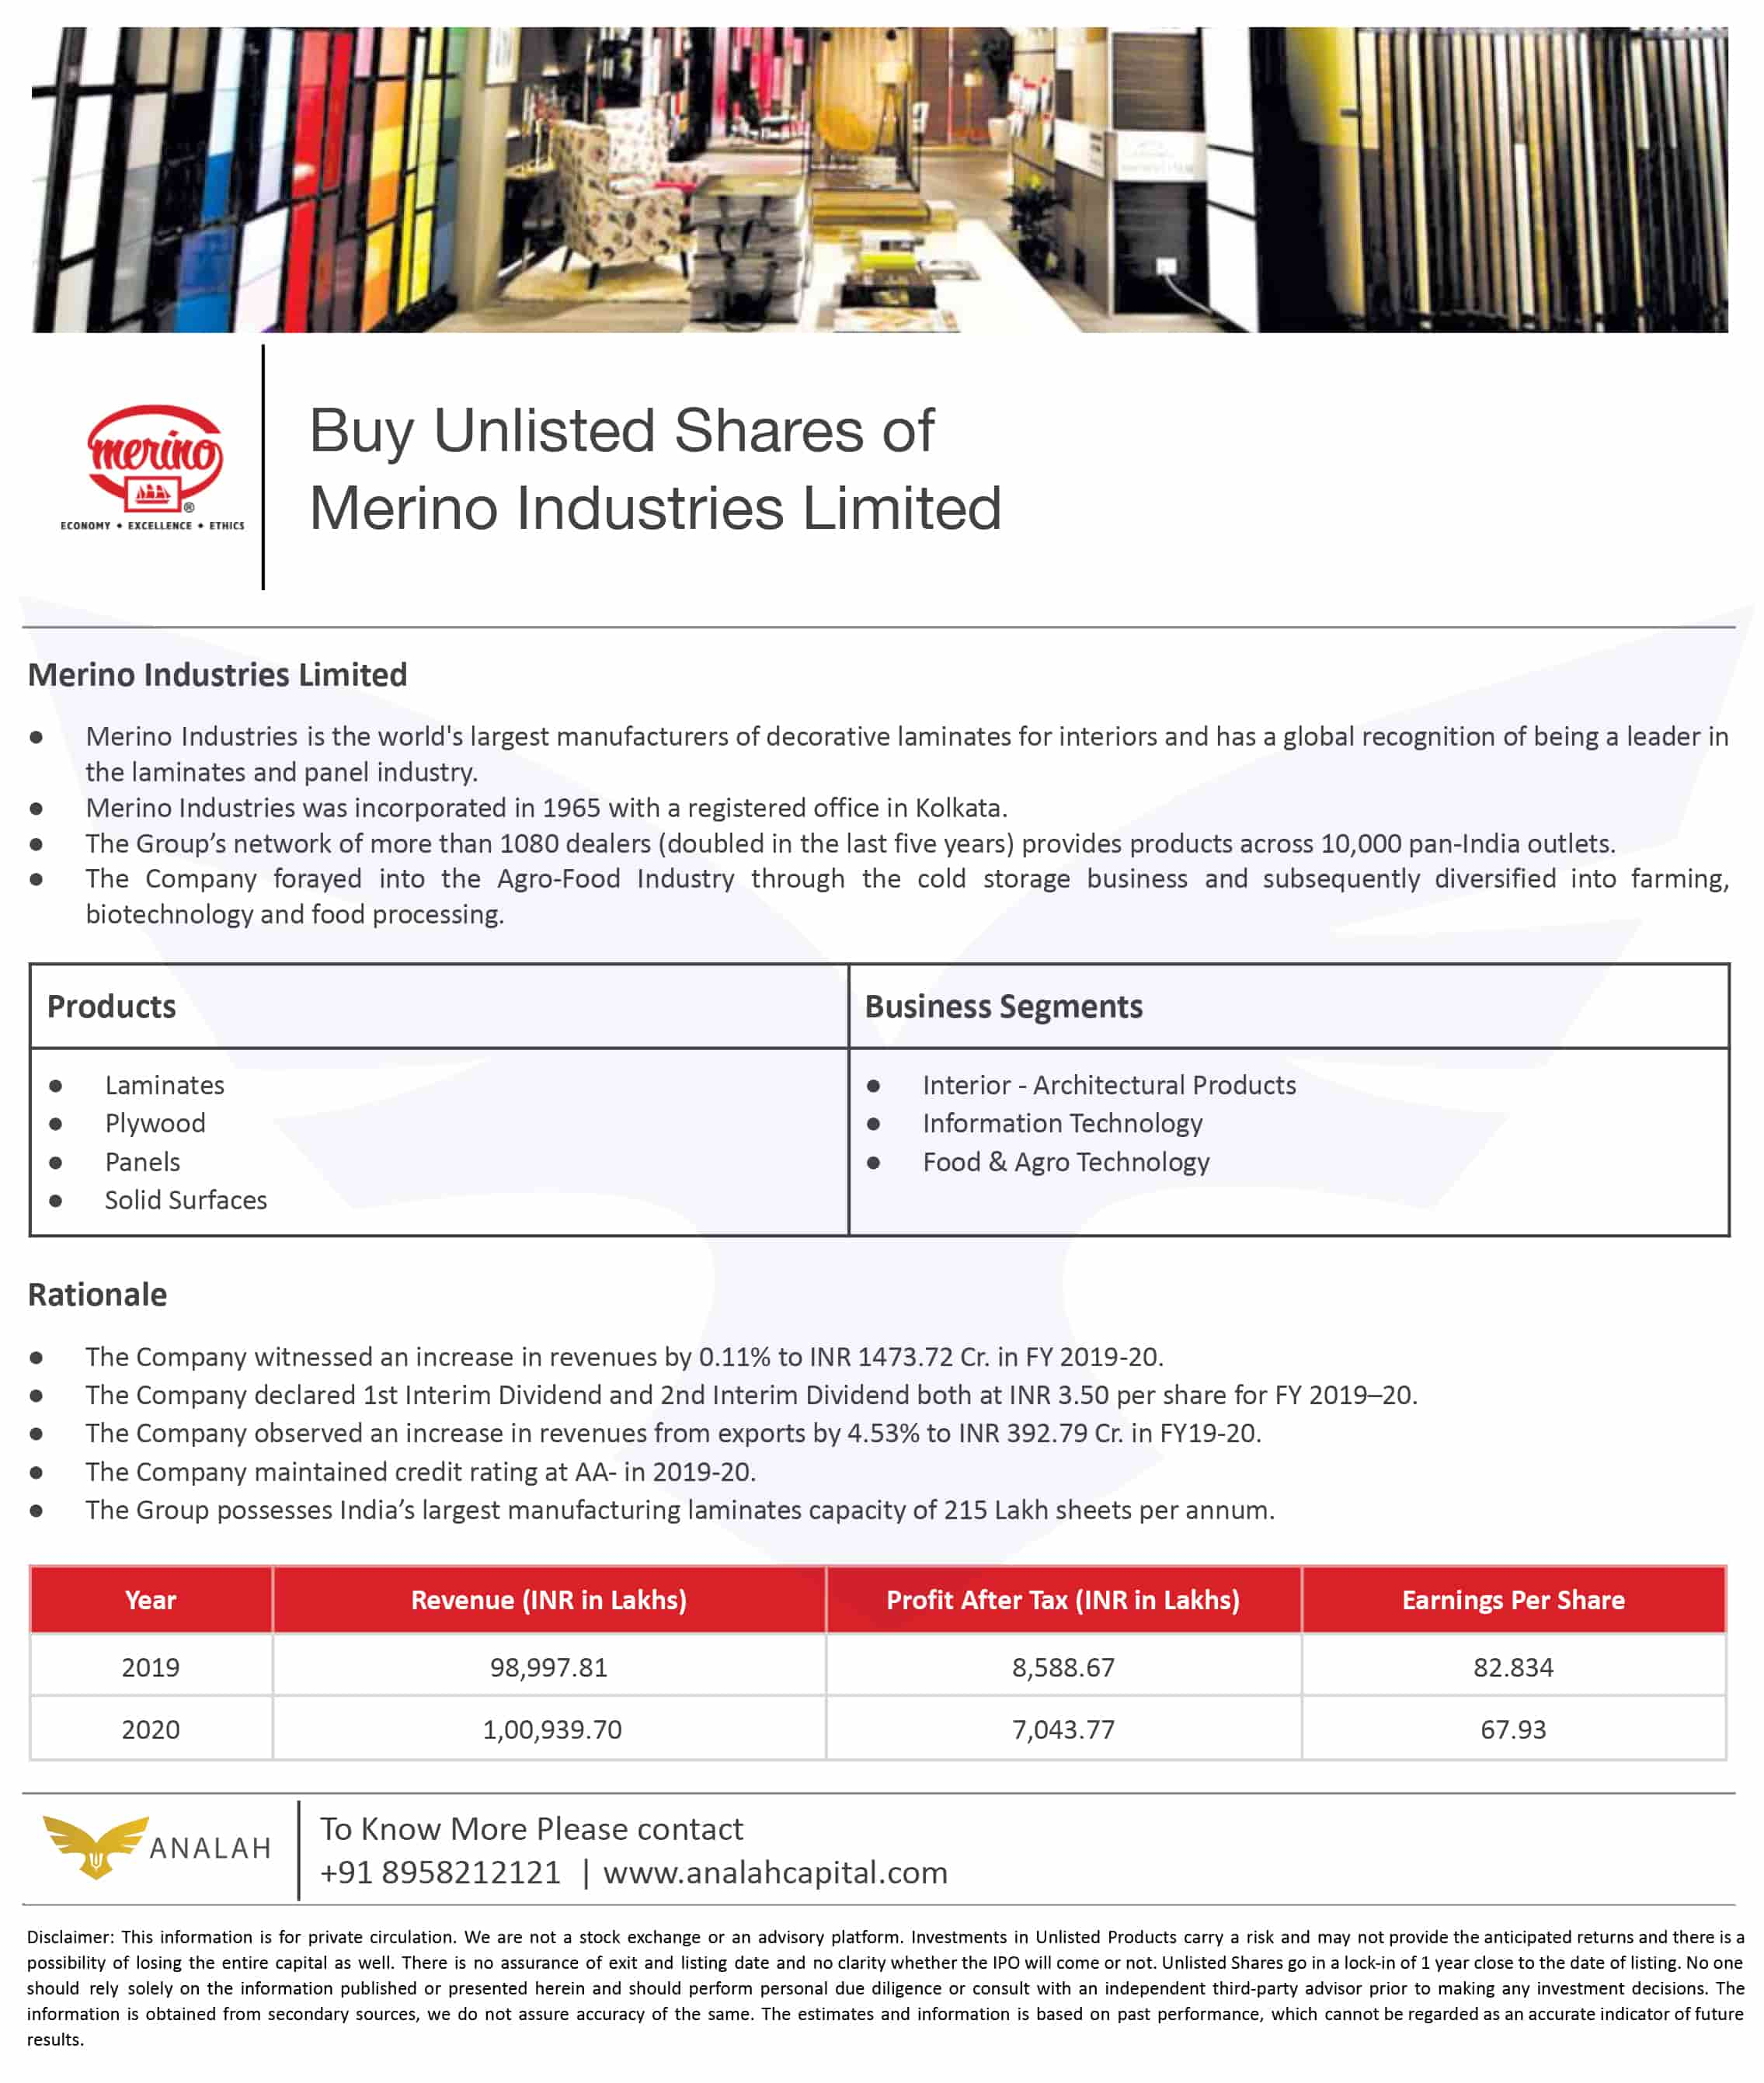 Merino Industries Unlisted Shares